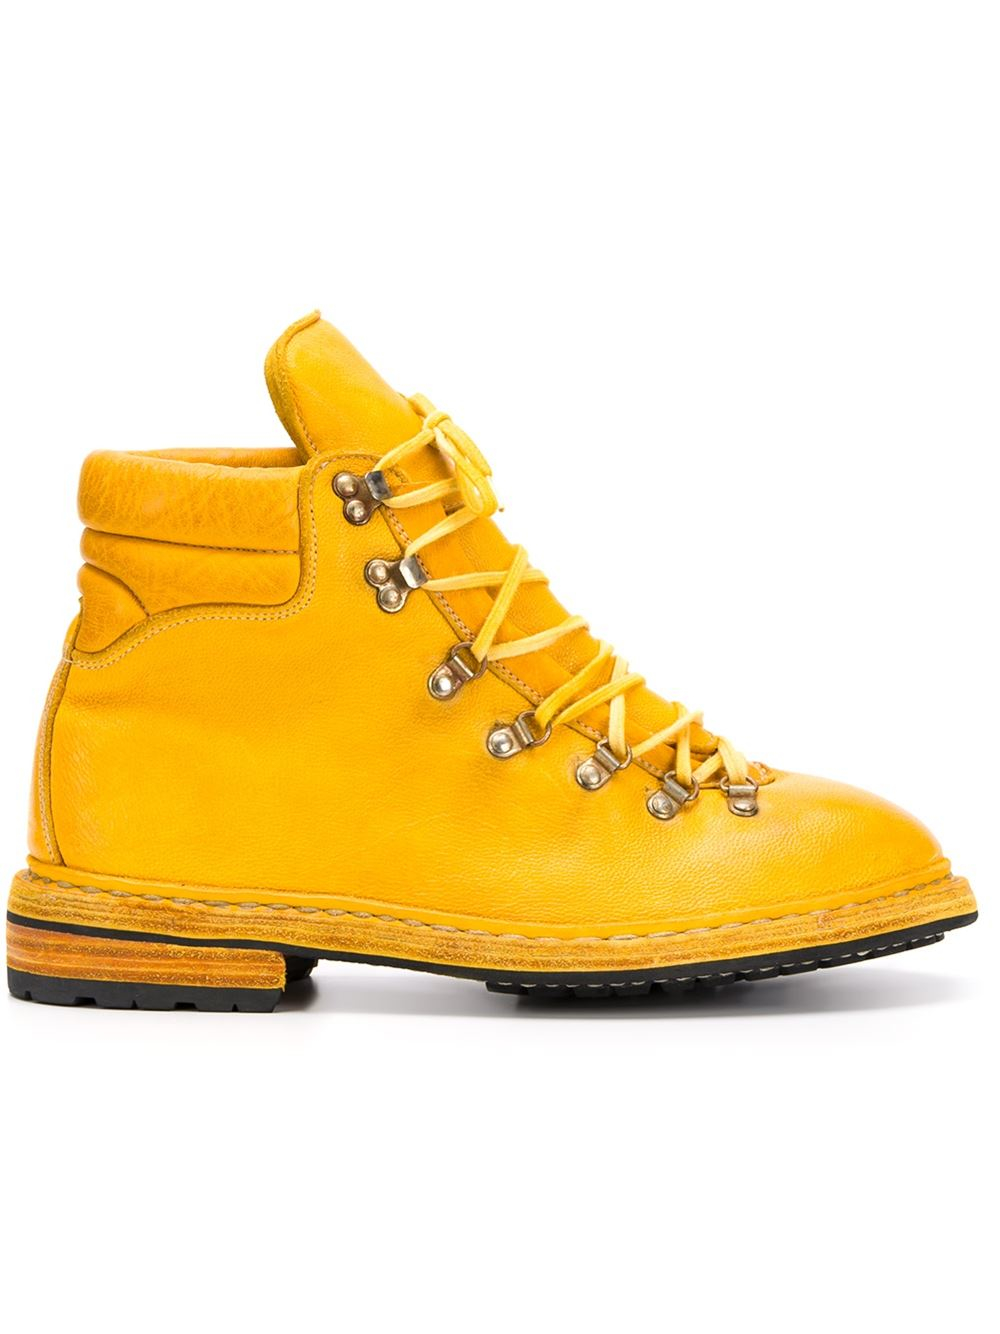 Guidi Lace-Up Leather Mountain Boots in Yellow for Men